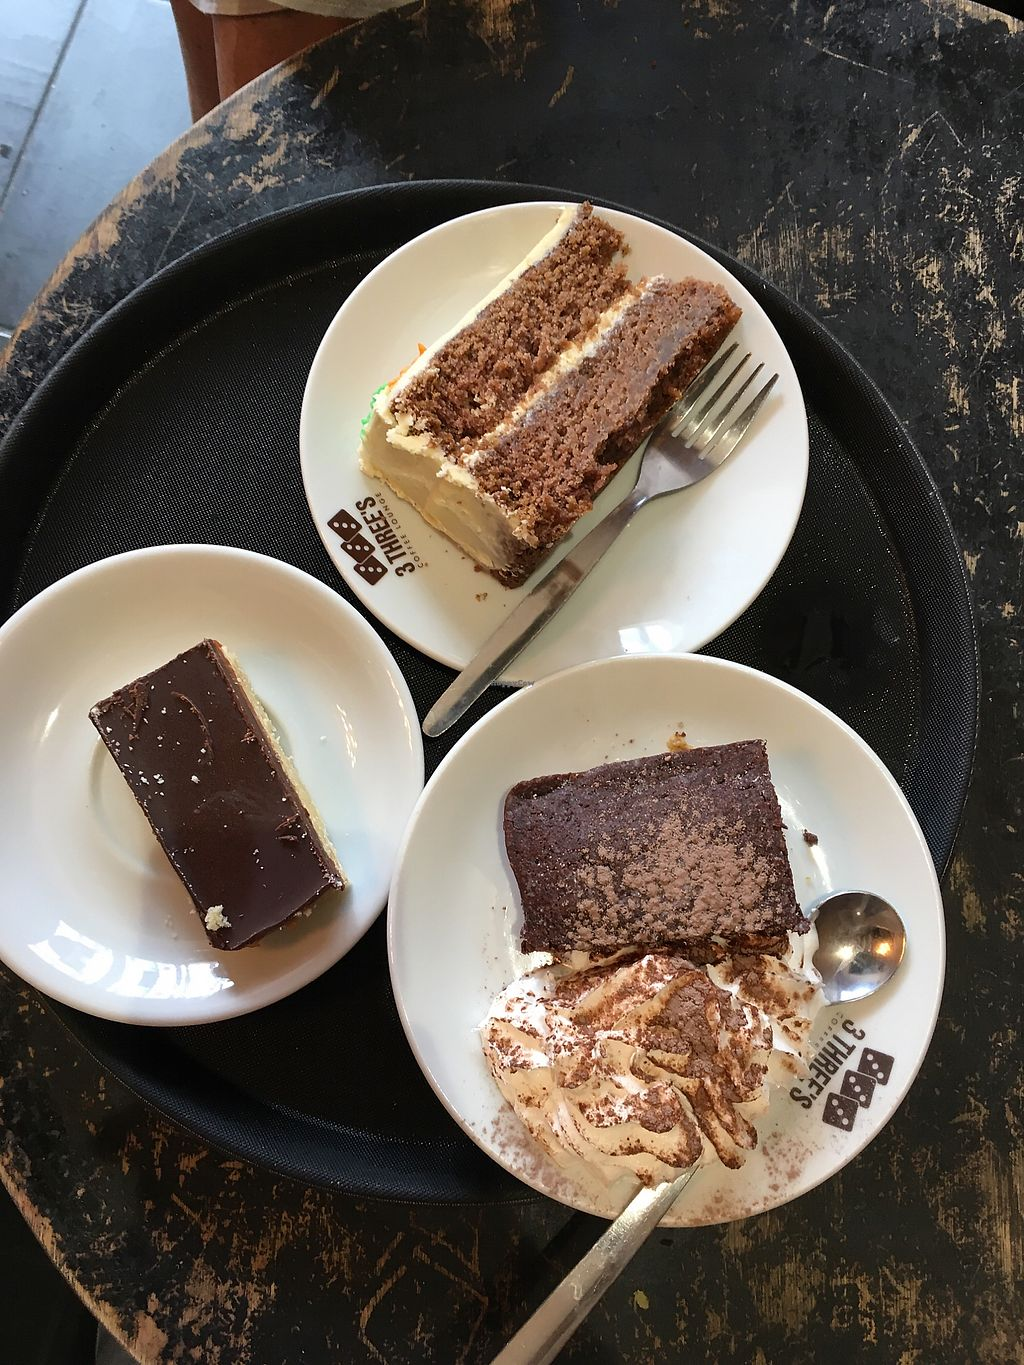 "Photo of 3 Three's Coffee Lounge  by <a href=""/members/profile/Spaghetti_monster"">Spaghetti_monster</a> <br/>vegan cake heaven: carrot cake, warm brownie with soy whip, caramel shortbread <br/> July 23, 2017  - <a href='/contact/abuse/image/73338/283737'>Report</a>"